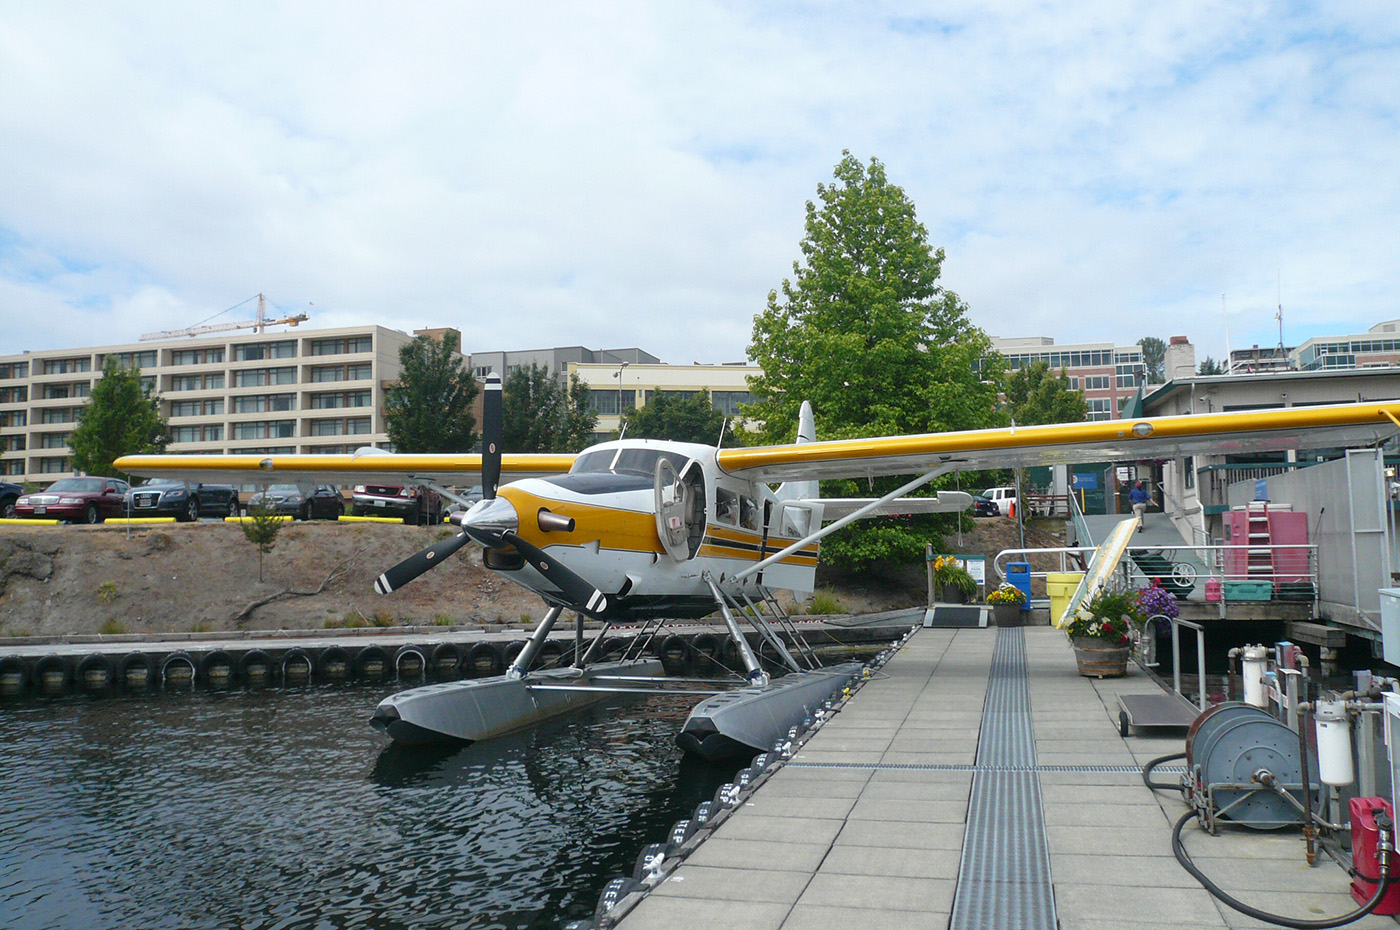 Here's the seaplane at the dock at Lake Union.